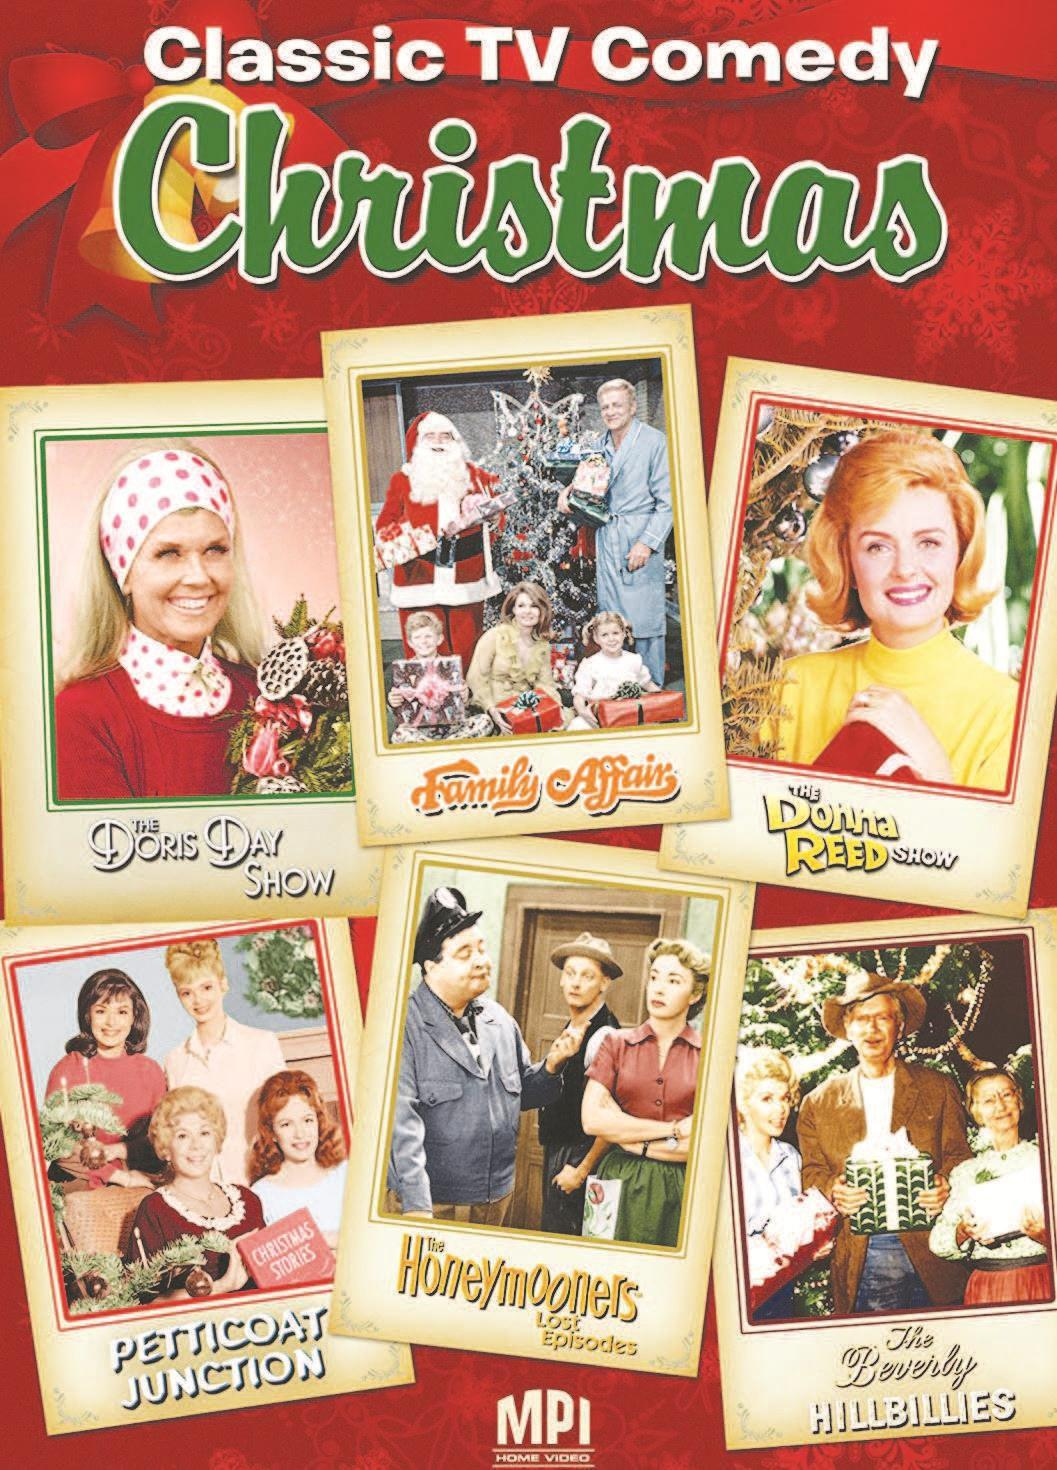 Classic sitcoms offer touching, funny Christmas moments